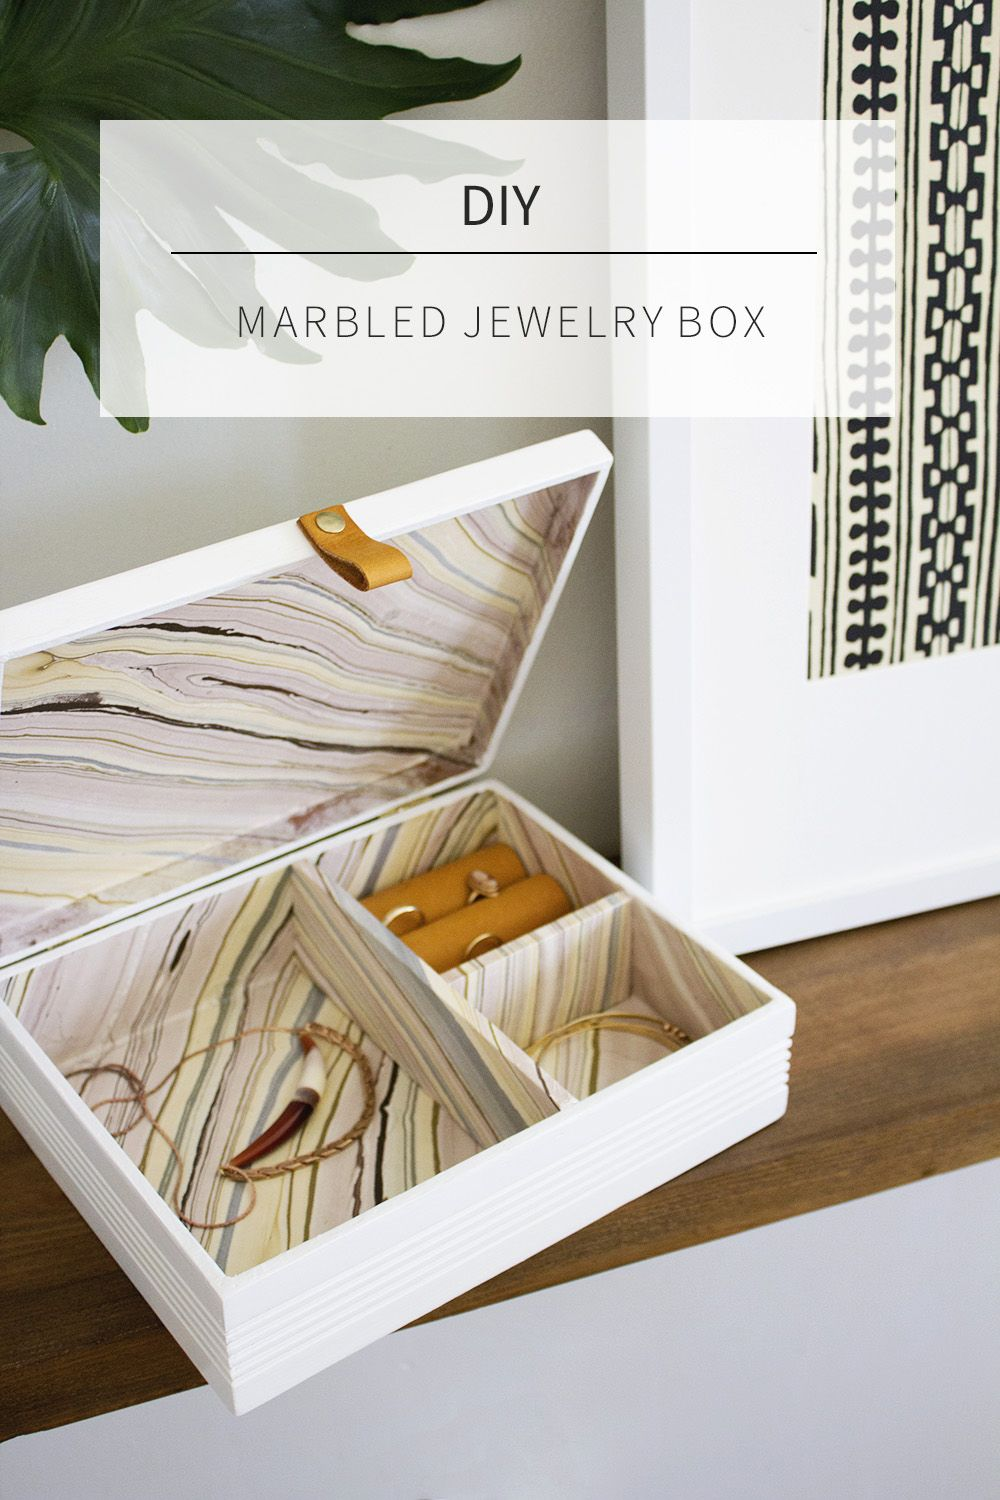 How to Make A Jewelry Box from a Cigar Box Diy jewelry box Cigar